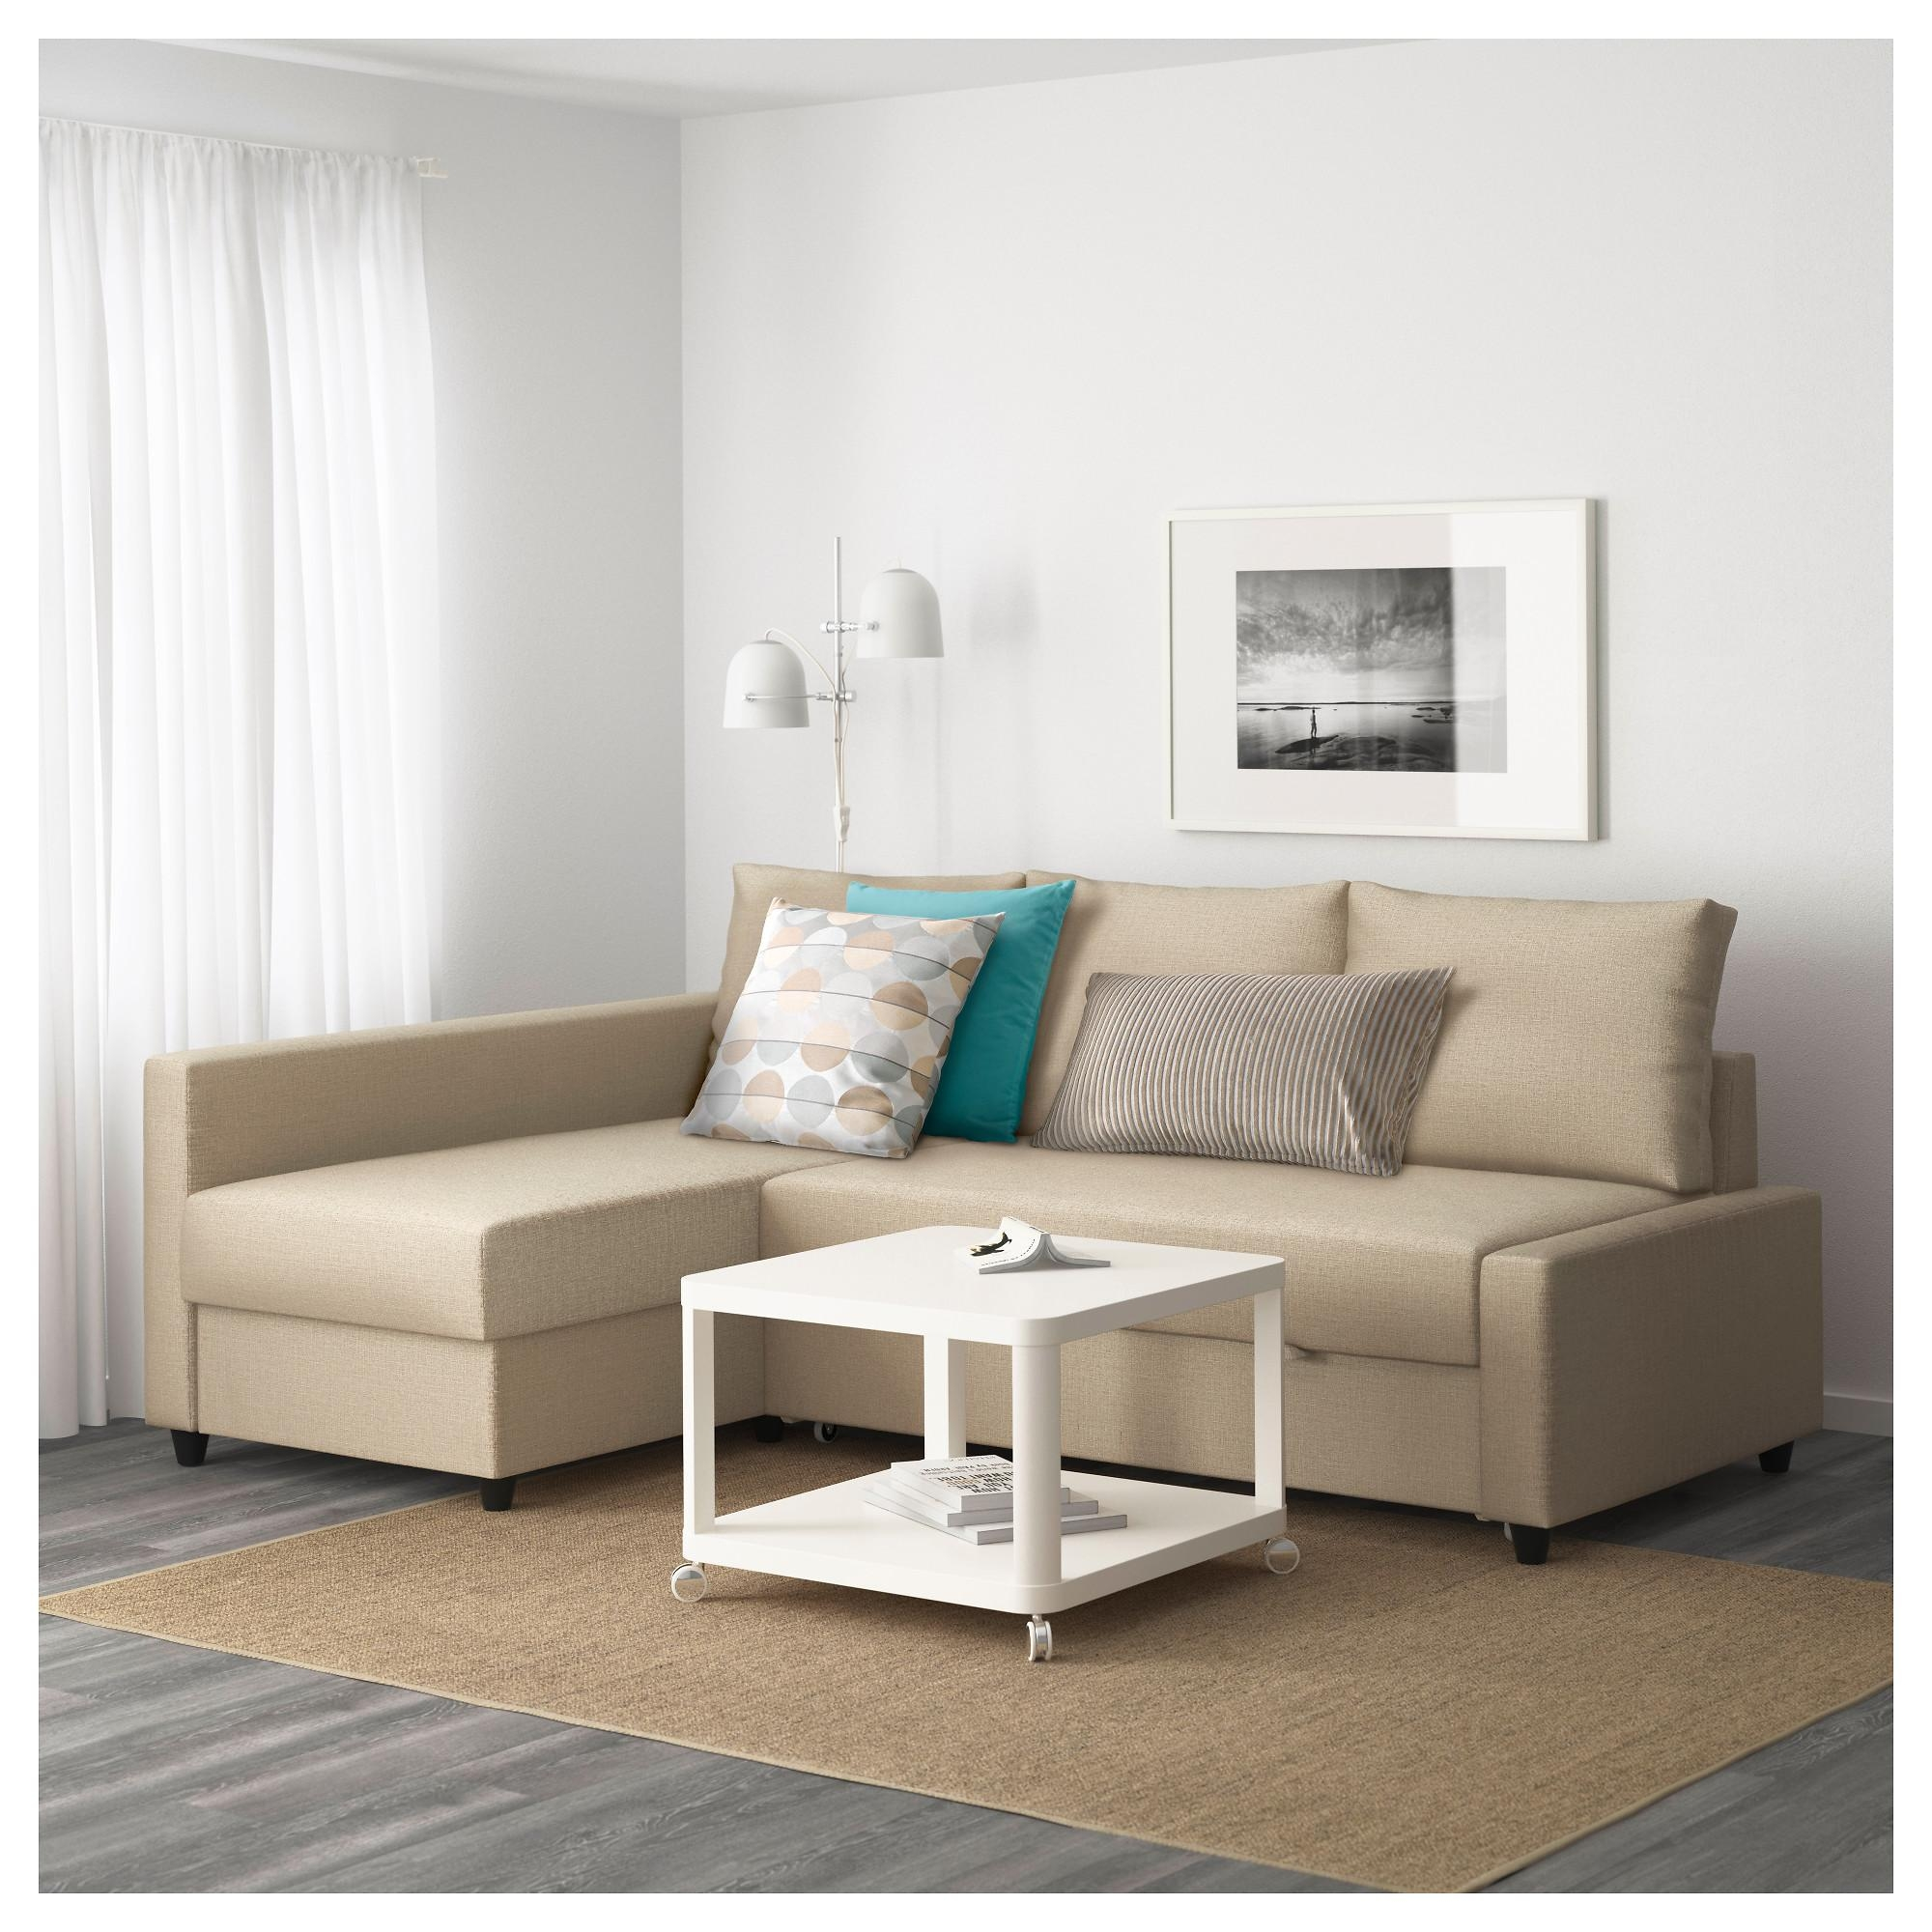 Friheten Corner Sofa Bed With Storage Skiftebo Beige – Ikea With Storage Sofas Ikea (Image 7 of 20)